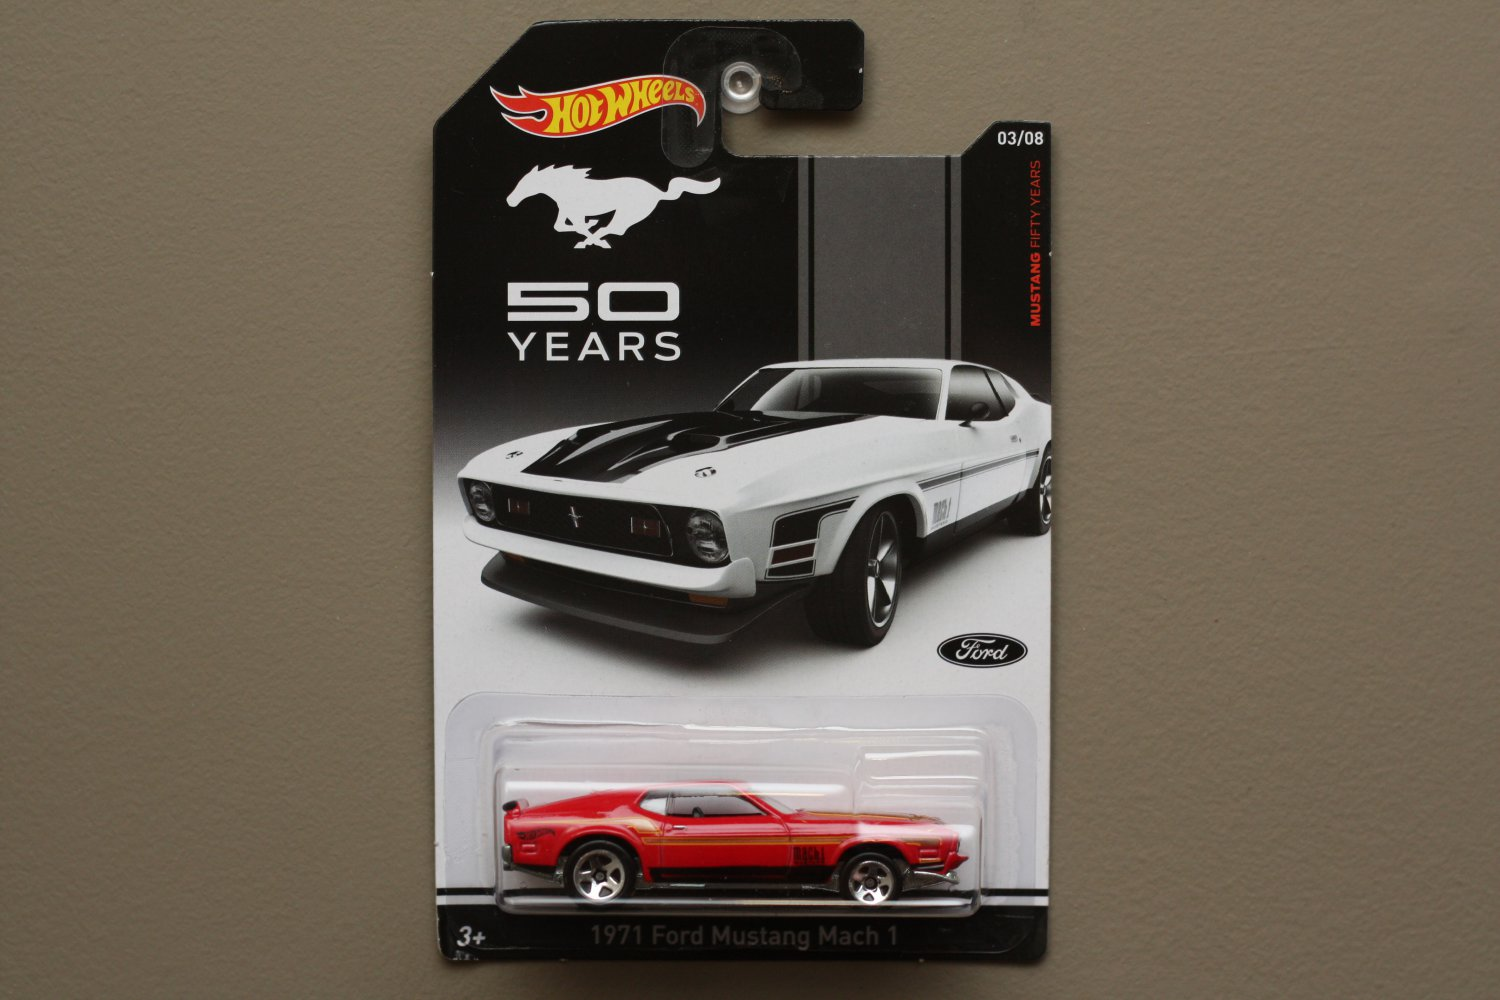 Hot Wheels 2014 Mustang 50 Years 1971 Ford Mustang Mach 1